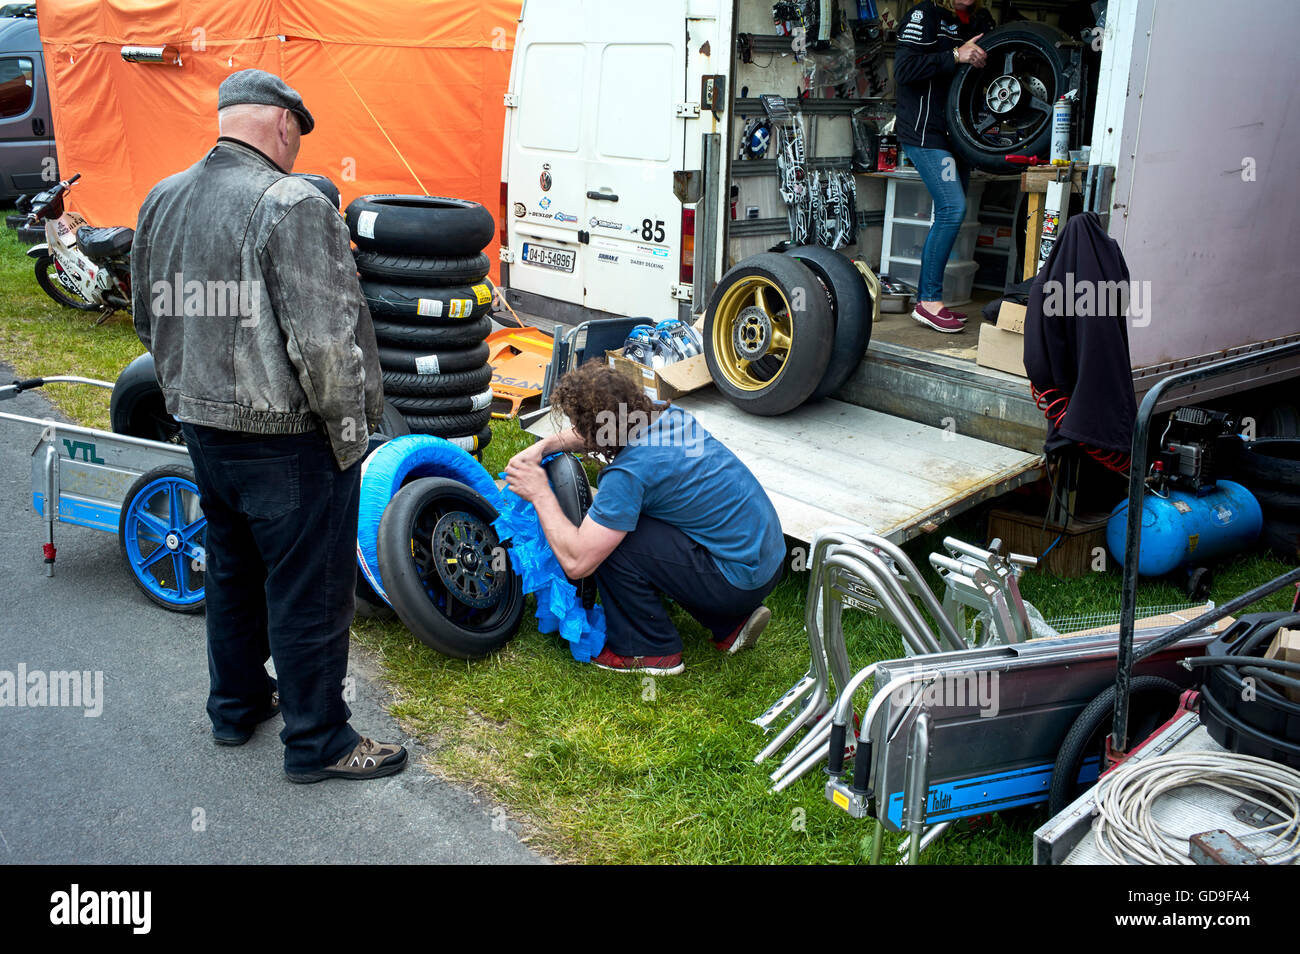 Tyres being prepared in pits area of grandstand at 2016 TT races - Stock Image